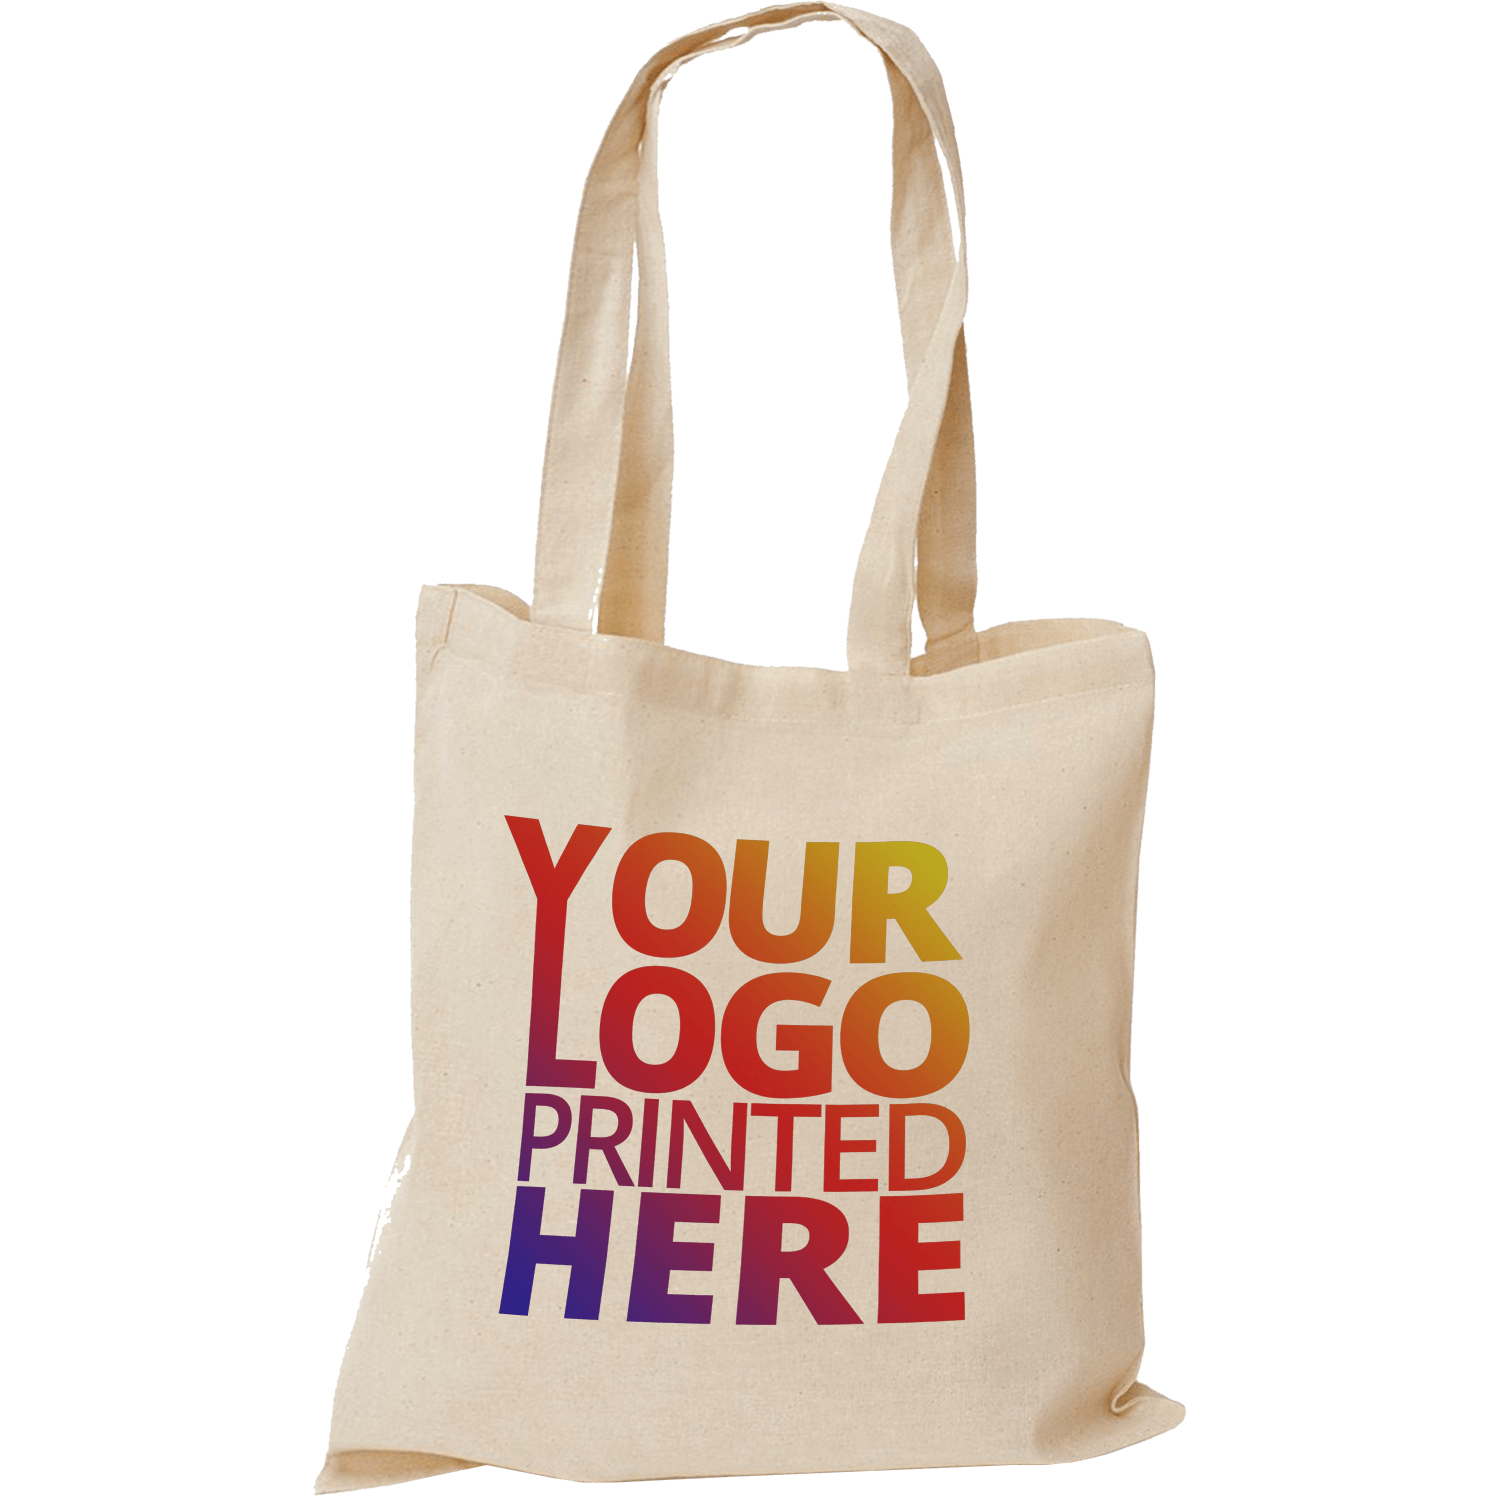 Natural Photo Cotton Printed Tote Bags 5oz